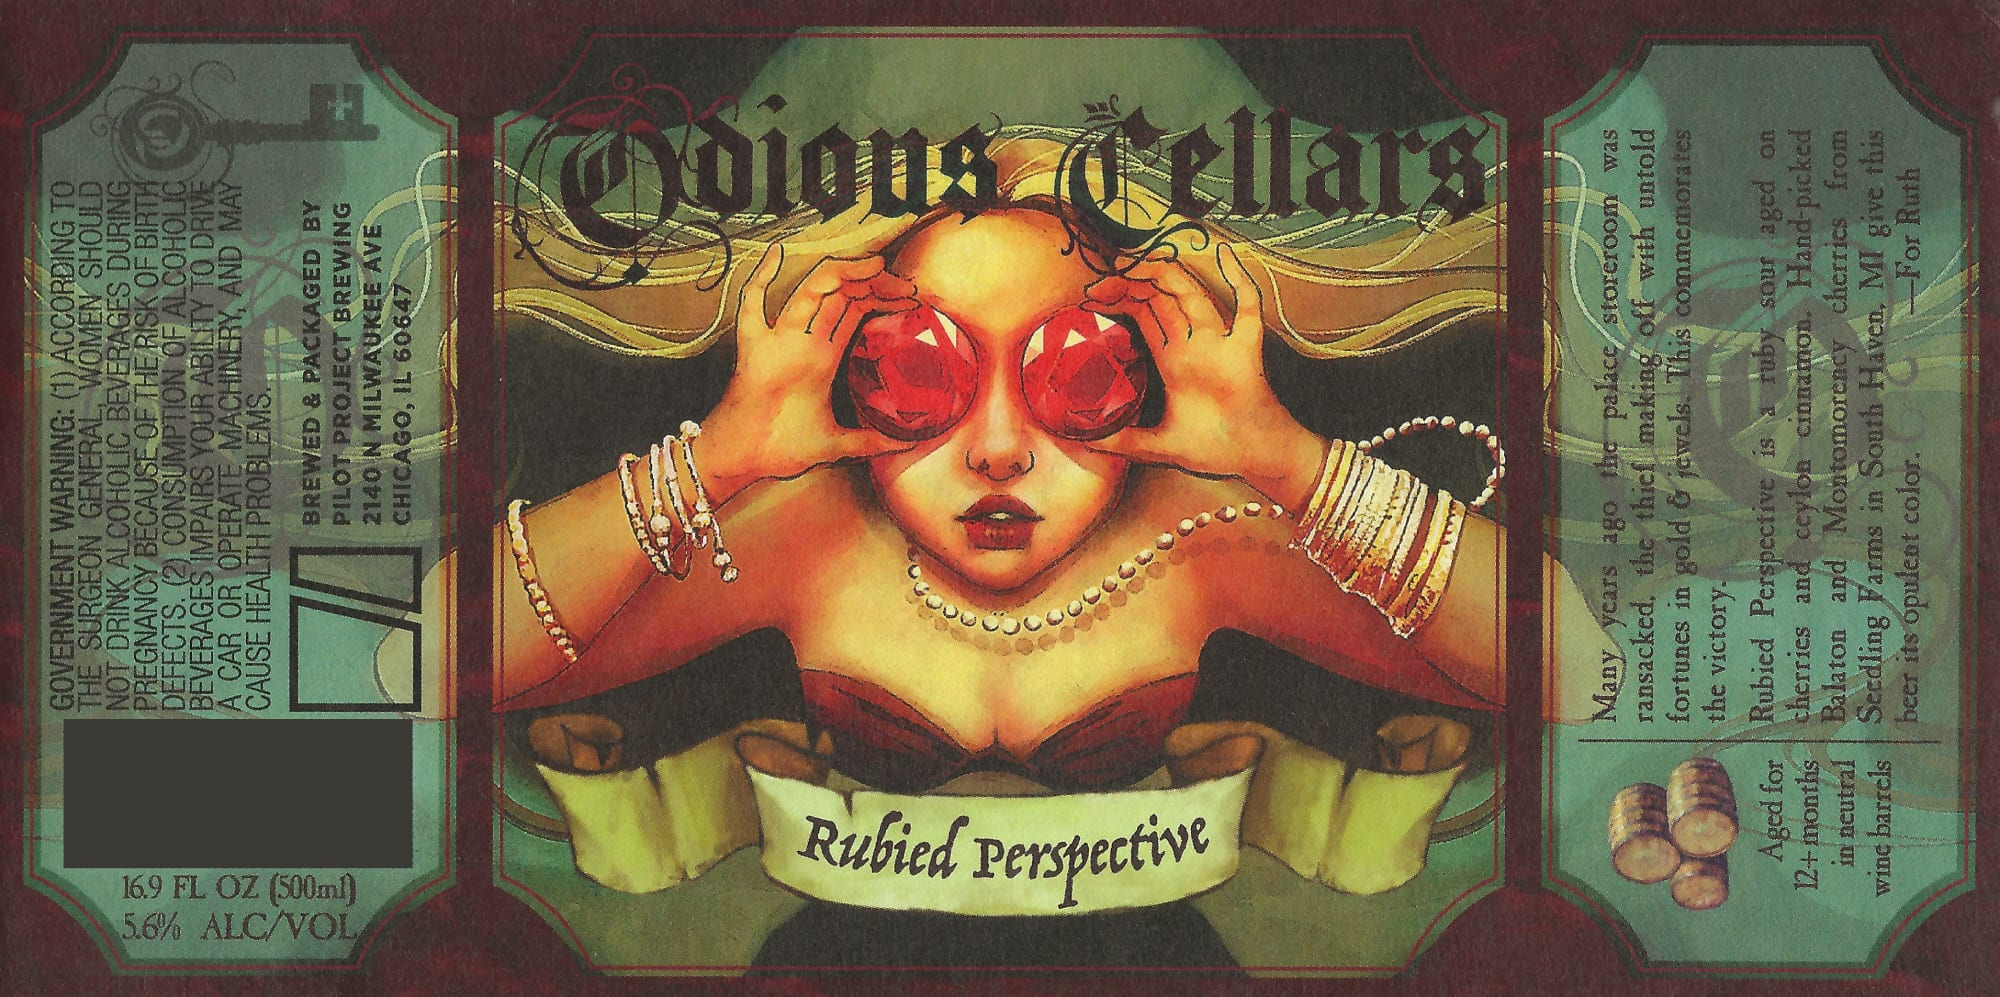 Odious Cellars Rubied Perspective Label